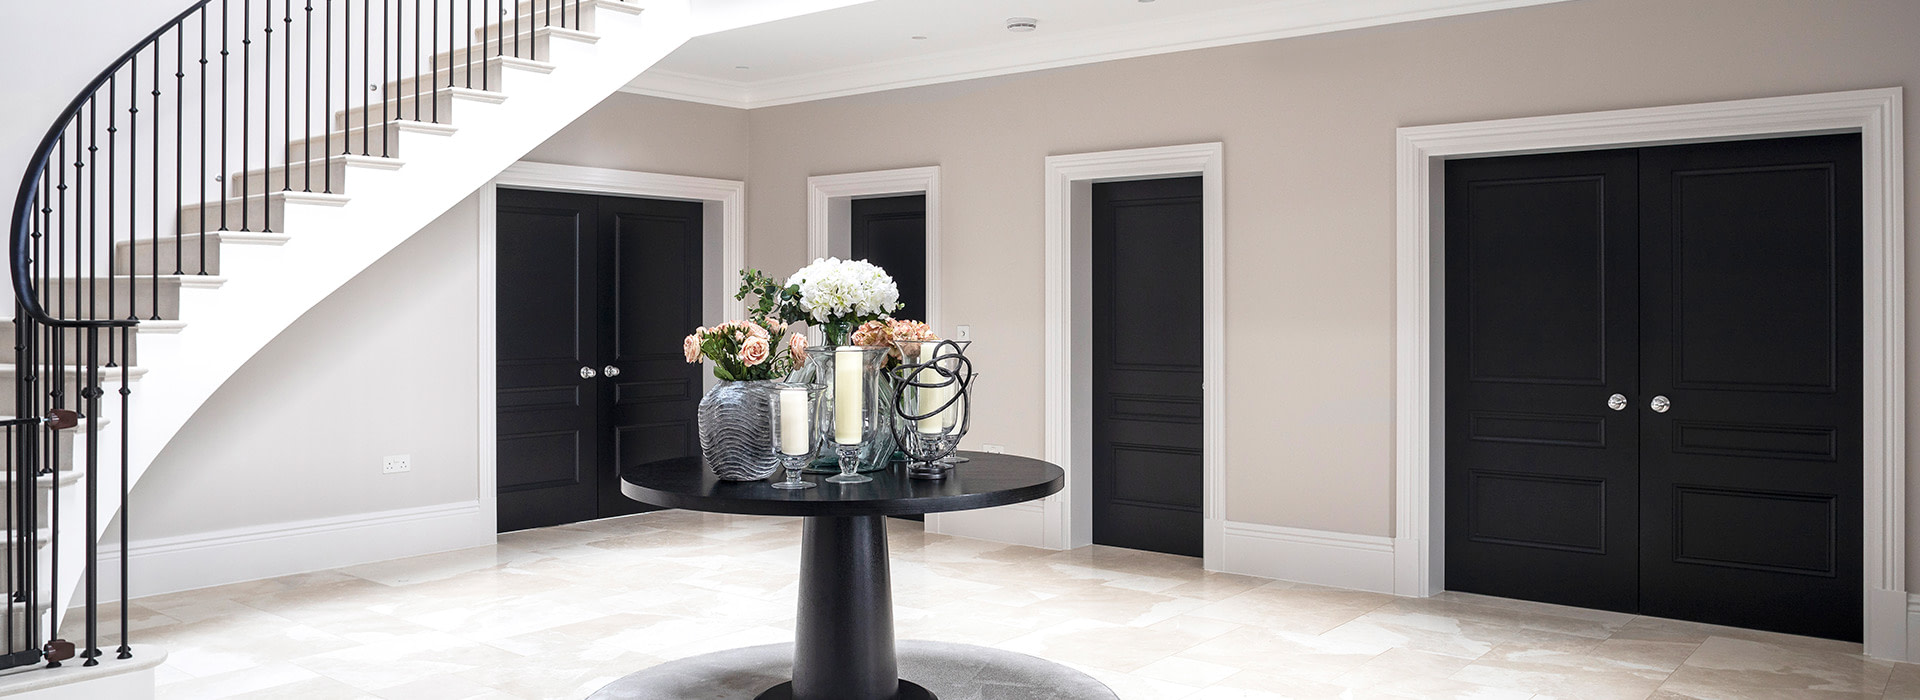 Large round console table in hallway